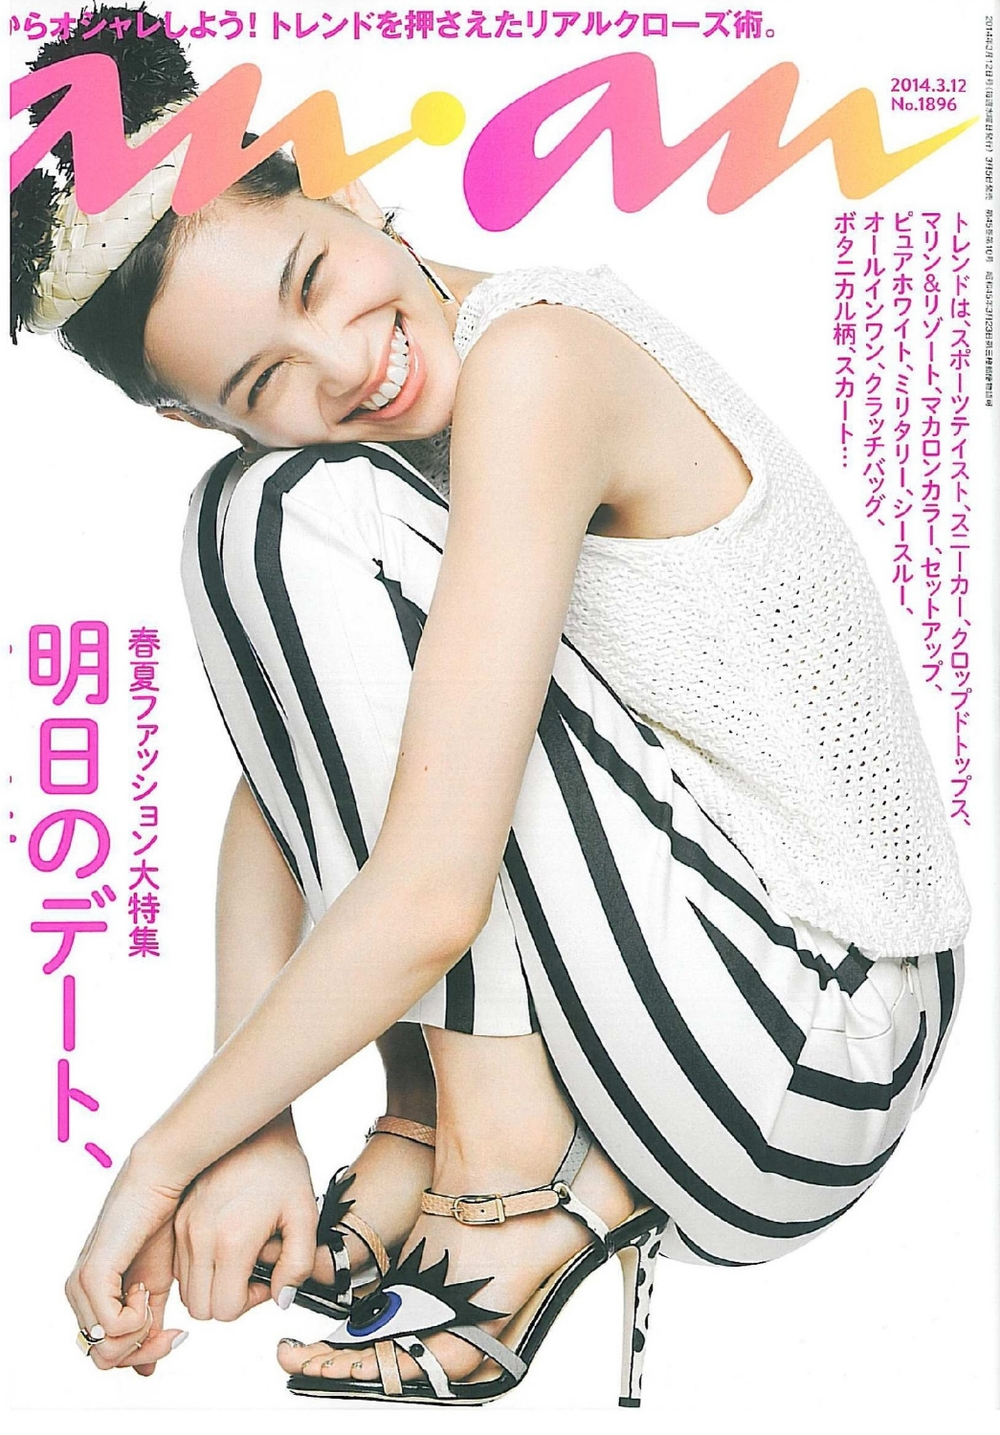 2014 March, Anan Issue 1896